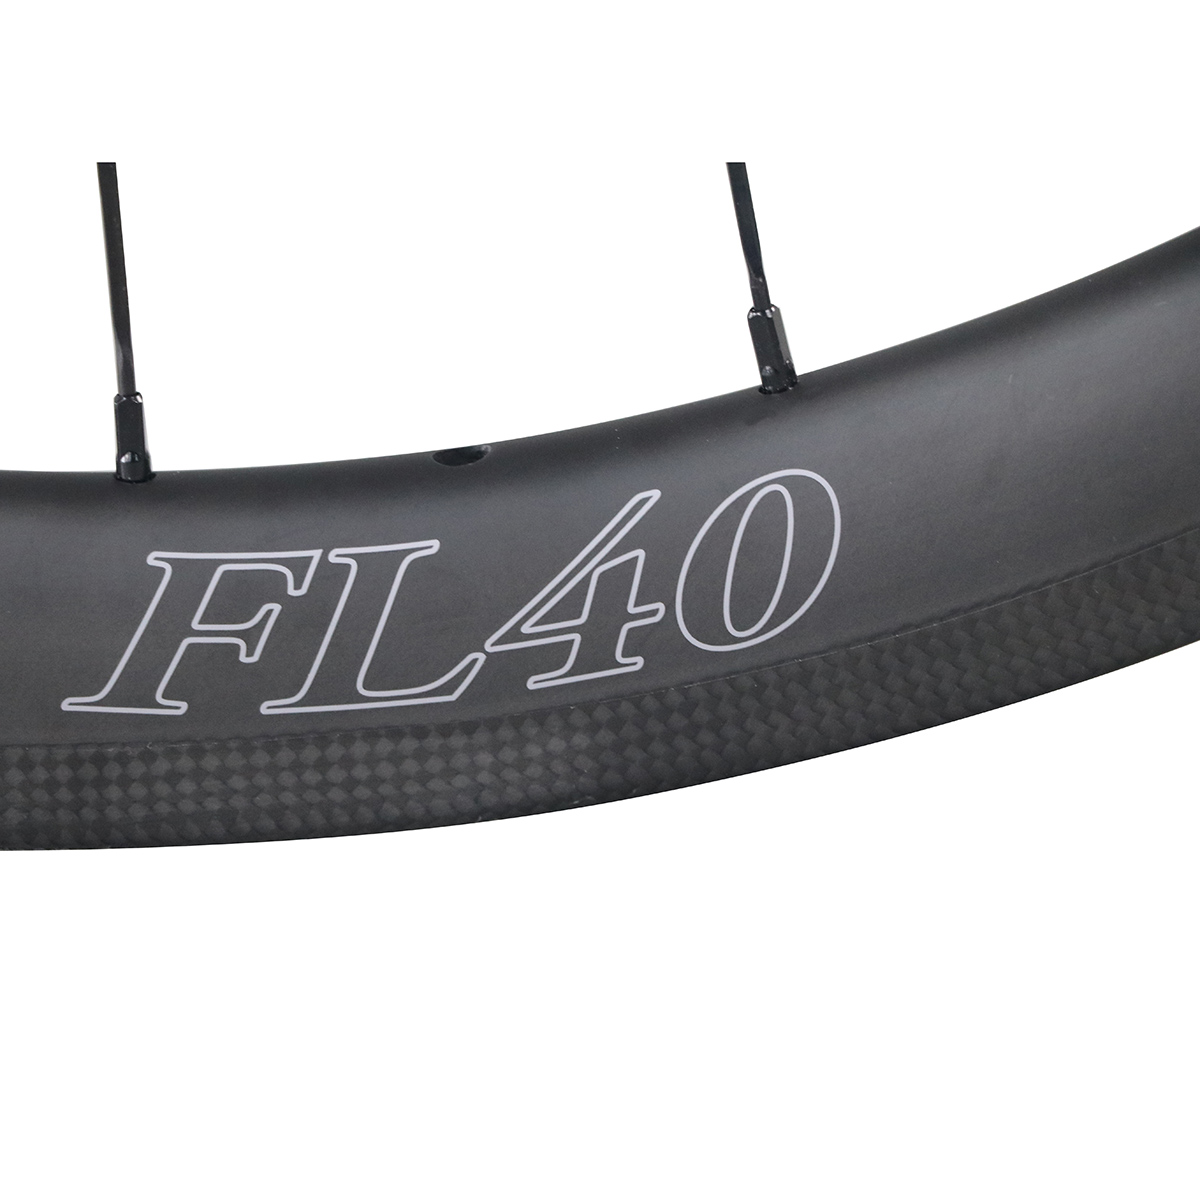 ICAN-Carbon-Fiber-Road-Bike-Wheelset-40mm-Clincher-Tubeless-Ready thumbnail 7